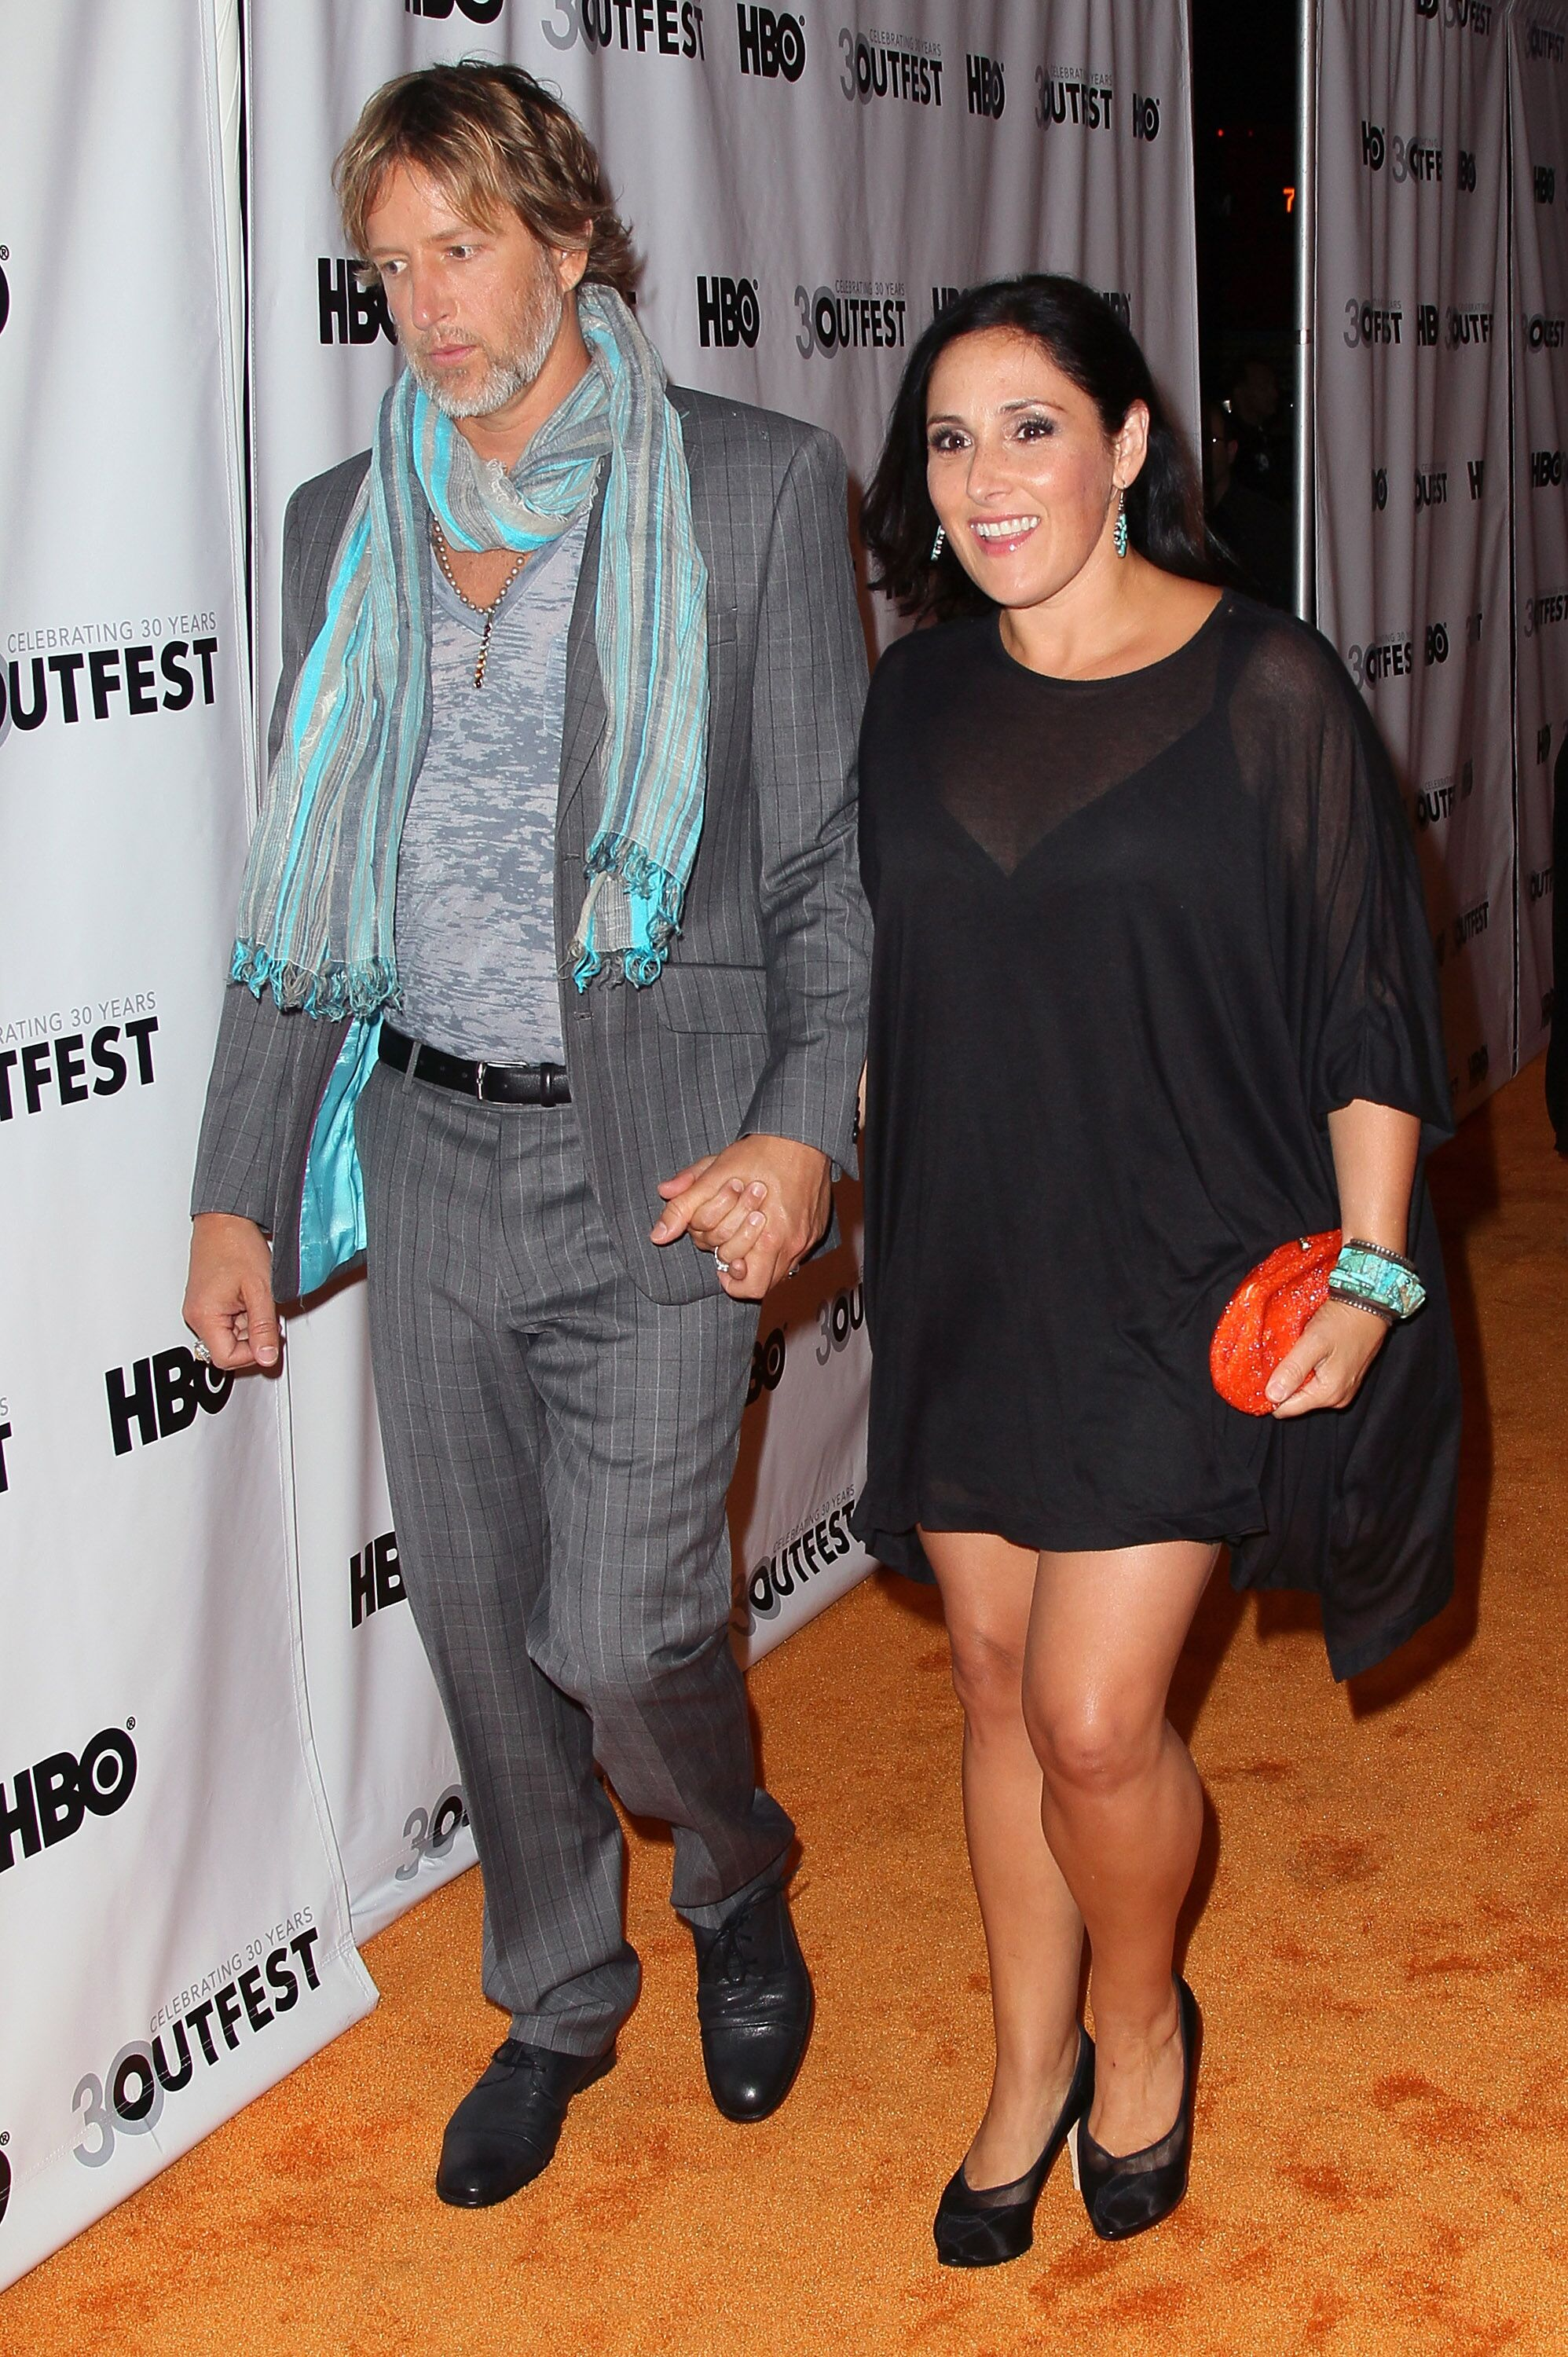 """Ricki Lake (R) and husband Christian Evans attend the 2012 Outfest opening night gala screening of """"VITO"""" at the Orpheum Theatre on July 12, 2012 in Los Angeles, California. 